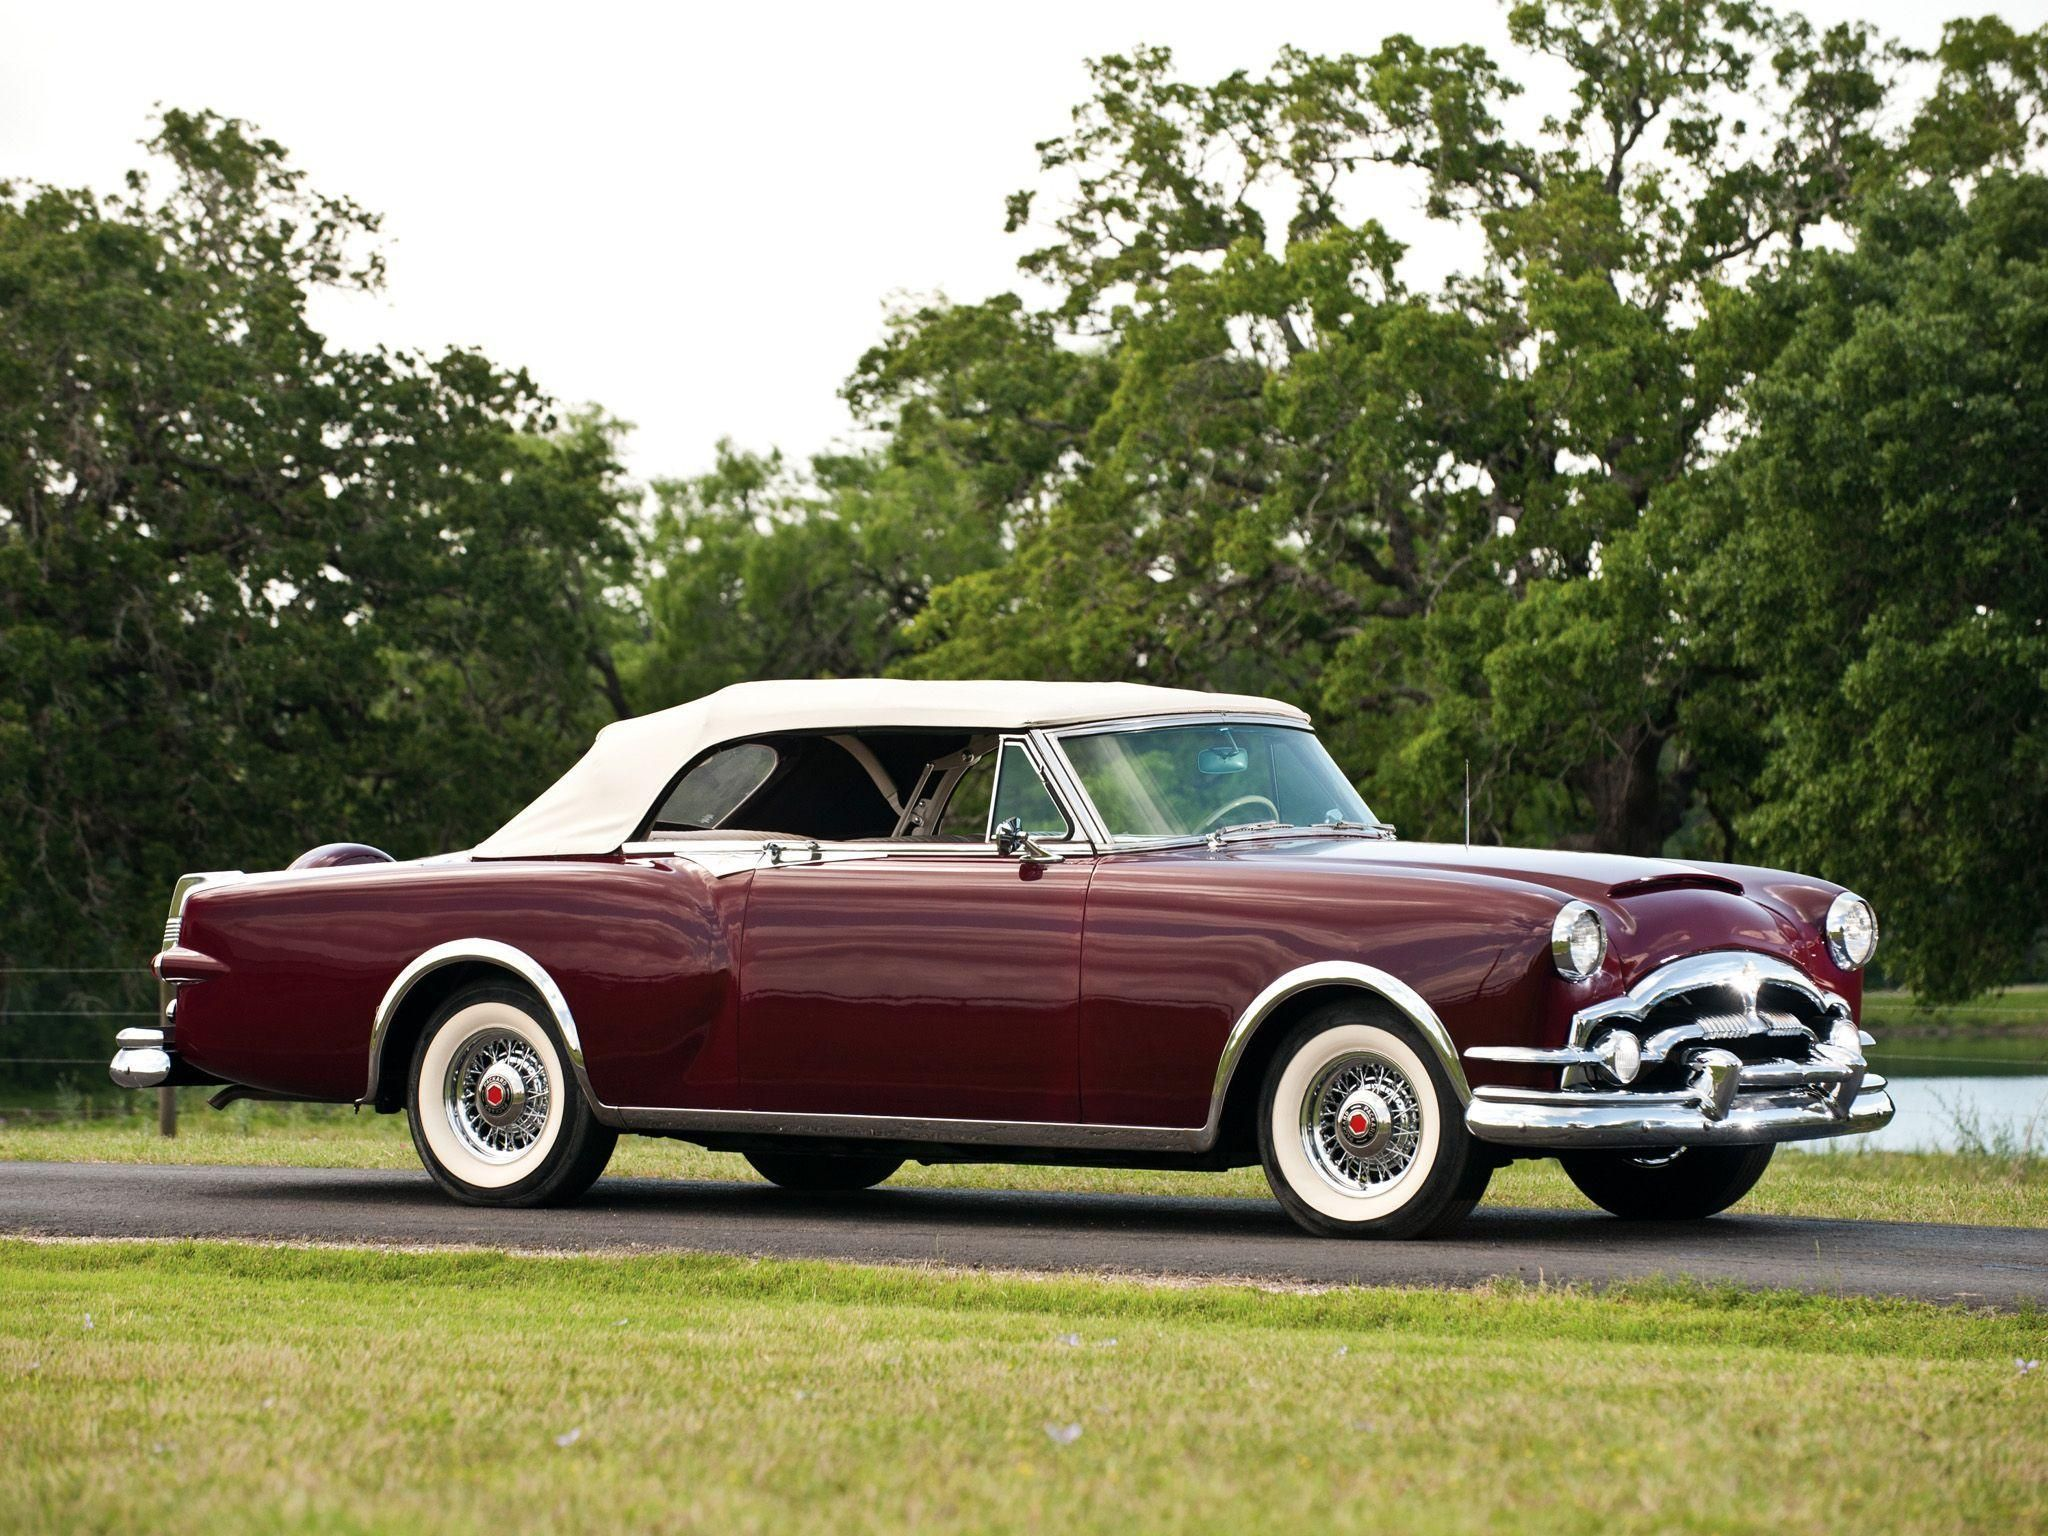 1953 Packard Caribbean Convertible Coupe Packard Cars Vintage Cars Classic Cars Vintage